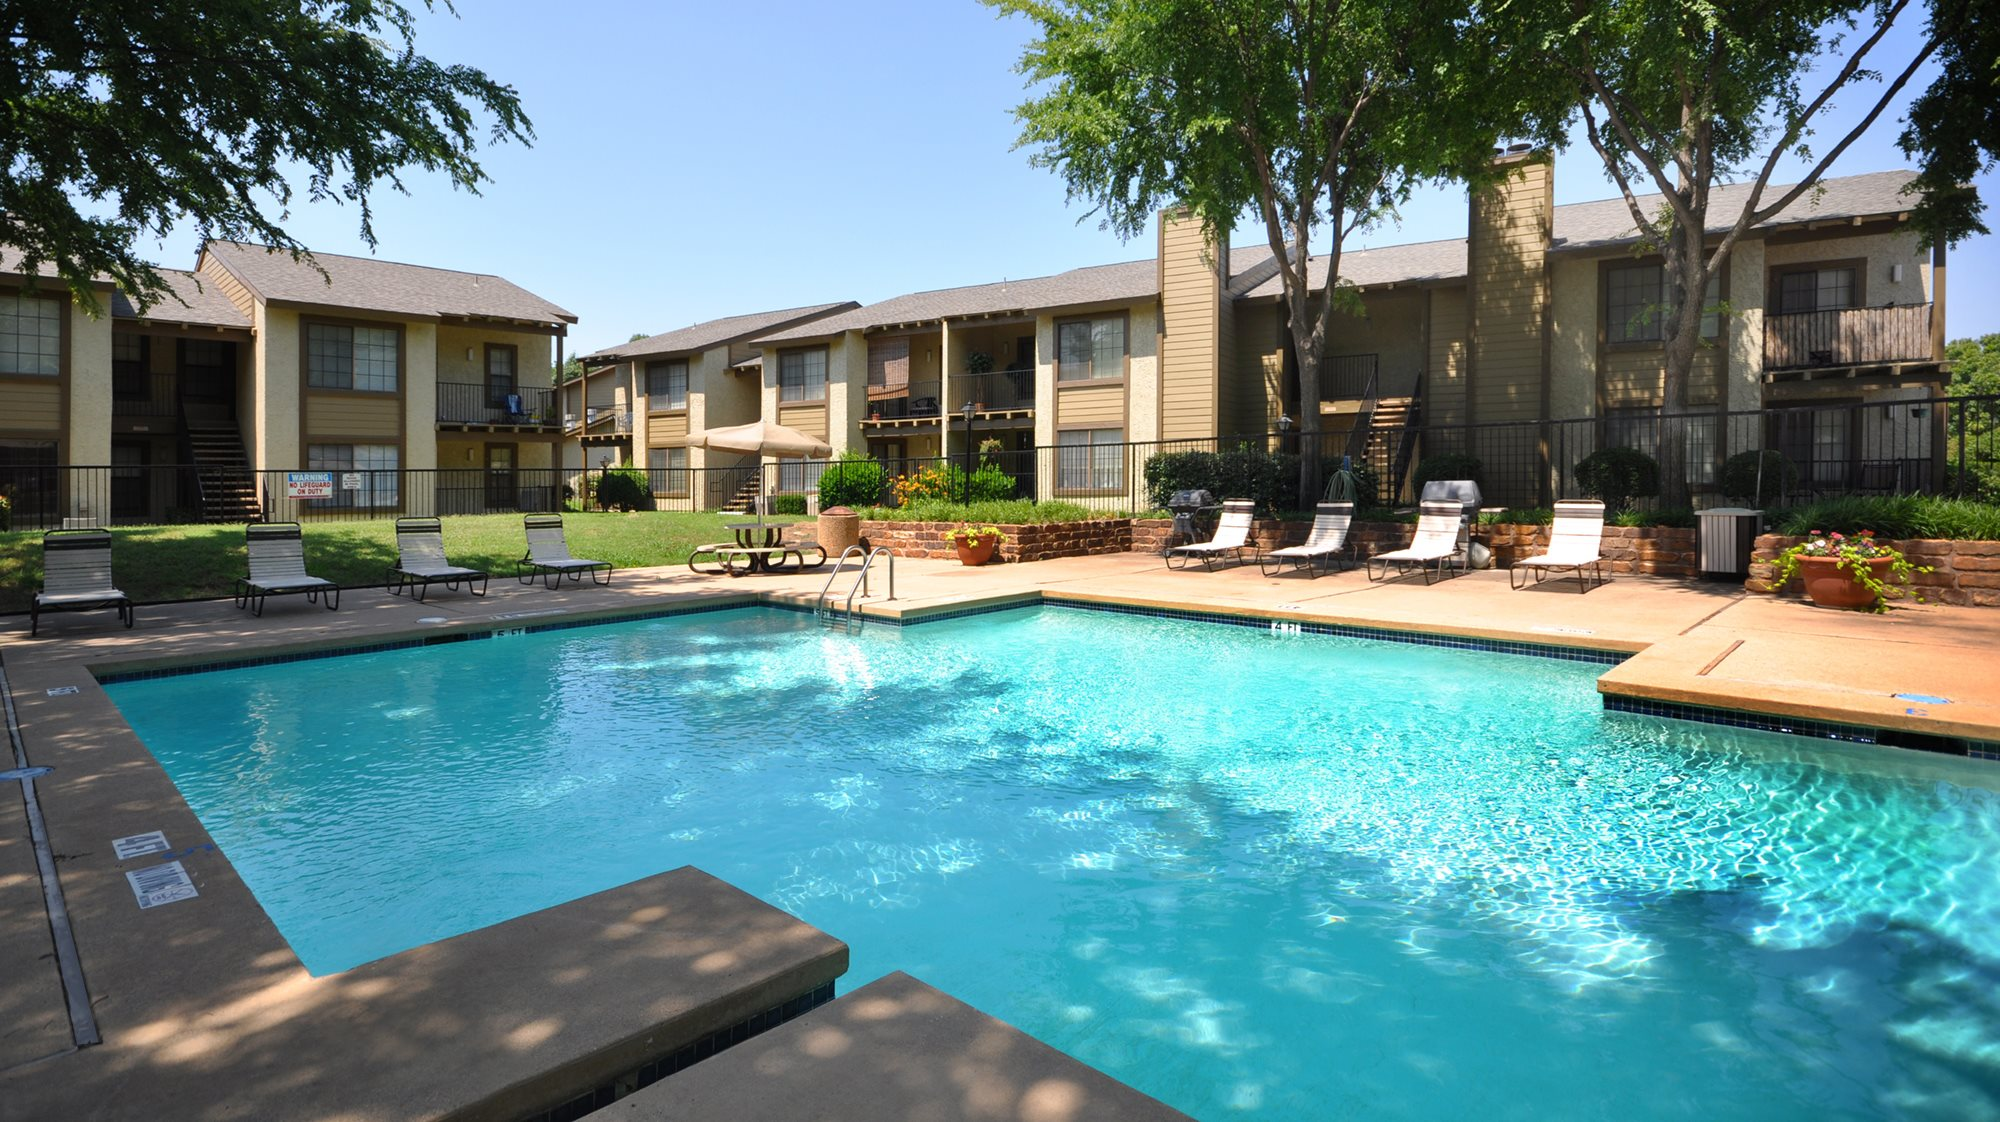 Copper Canyon Apartments, Apartments in Bedford, Bedford Rentals, Apartments in MidCities, Apartments near Hurst, Apartments near Euless